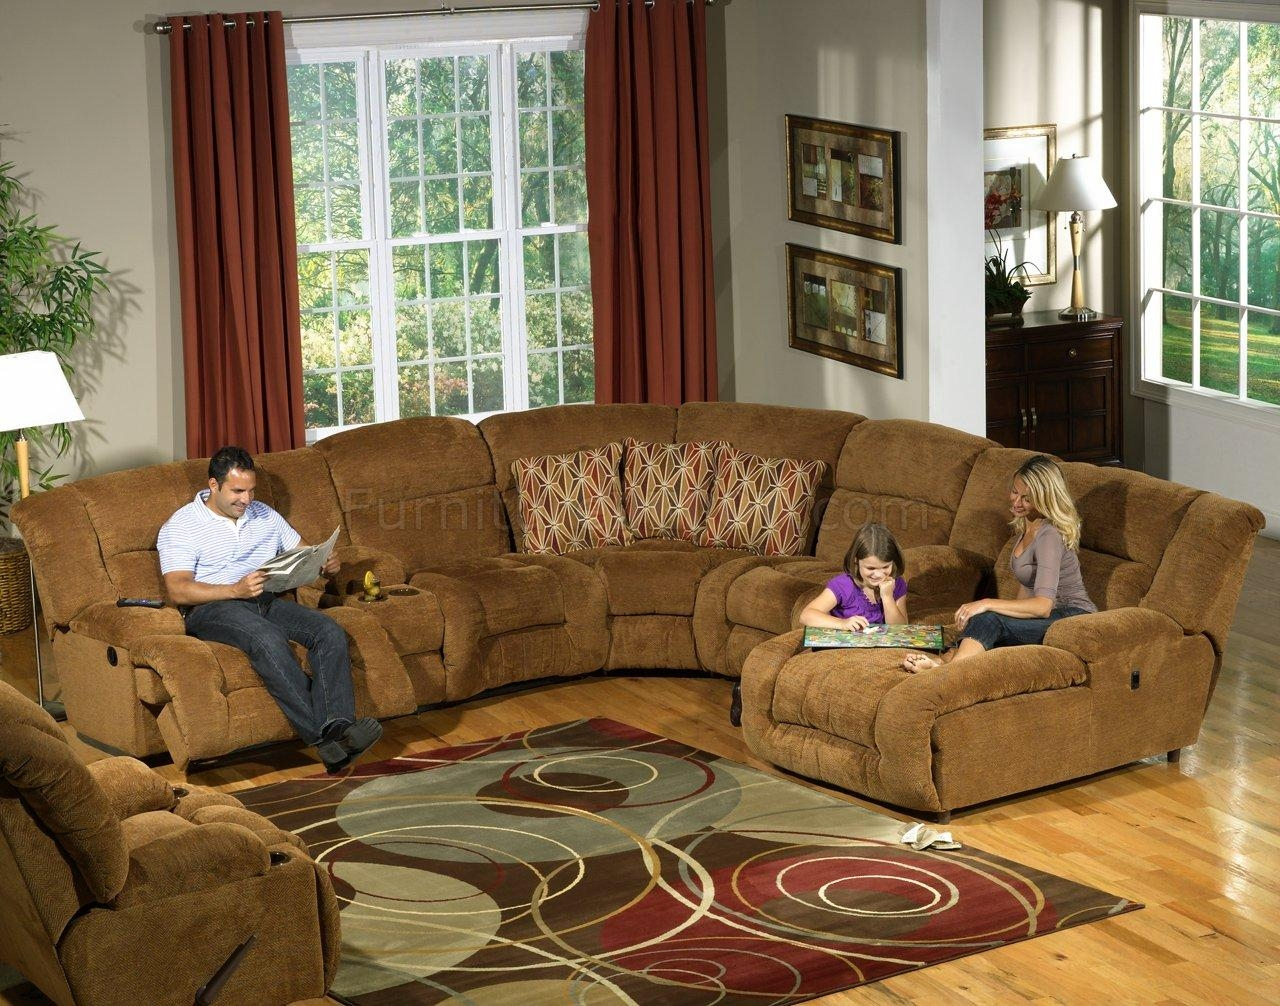 Camel Colored Sofa | Sofa Gallery | Kengire With Camel Color Sofas (Image 5 of 20)